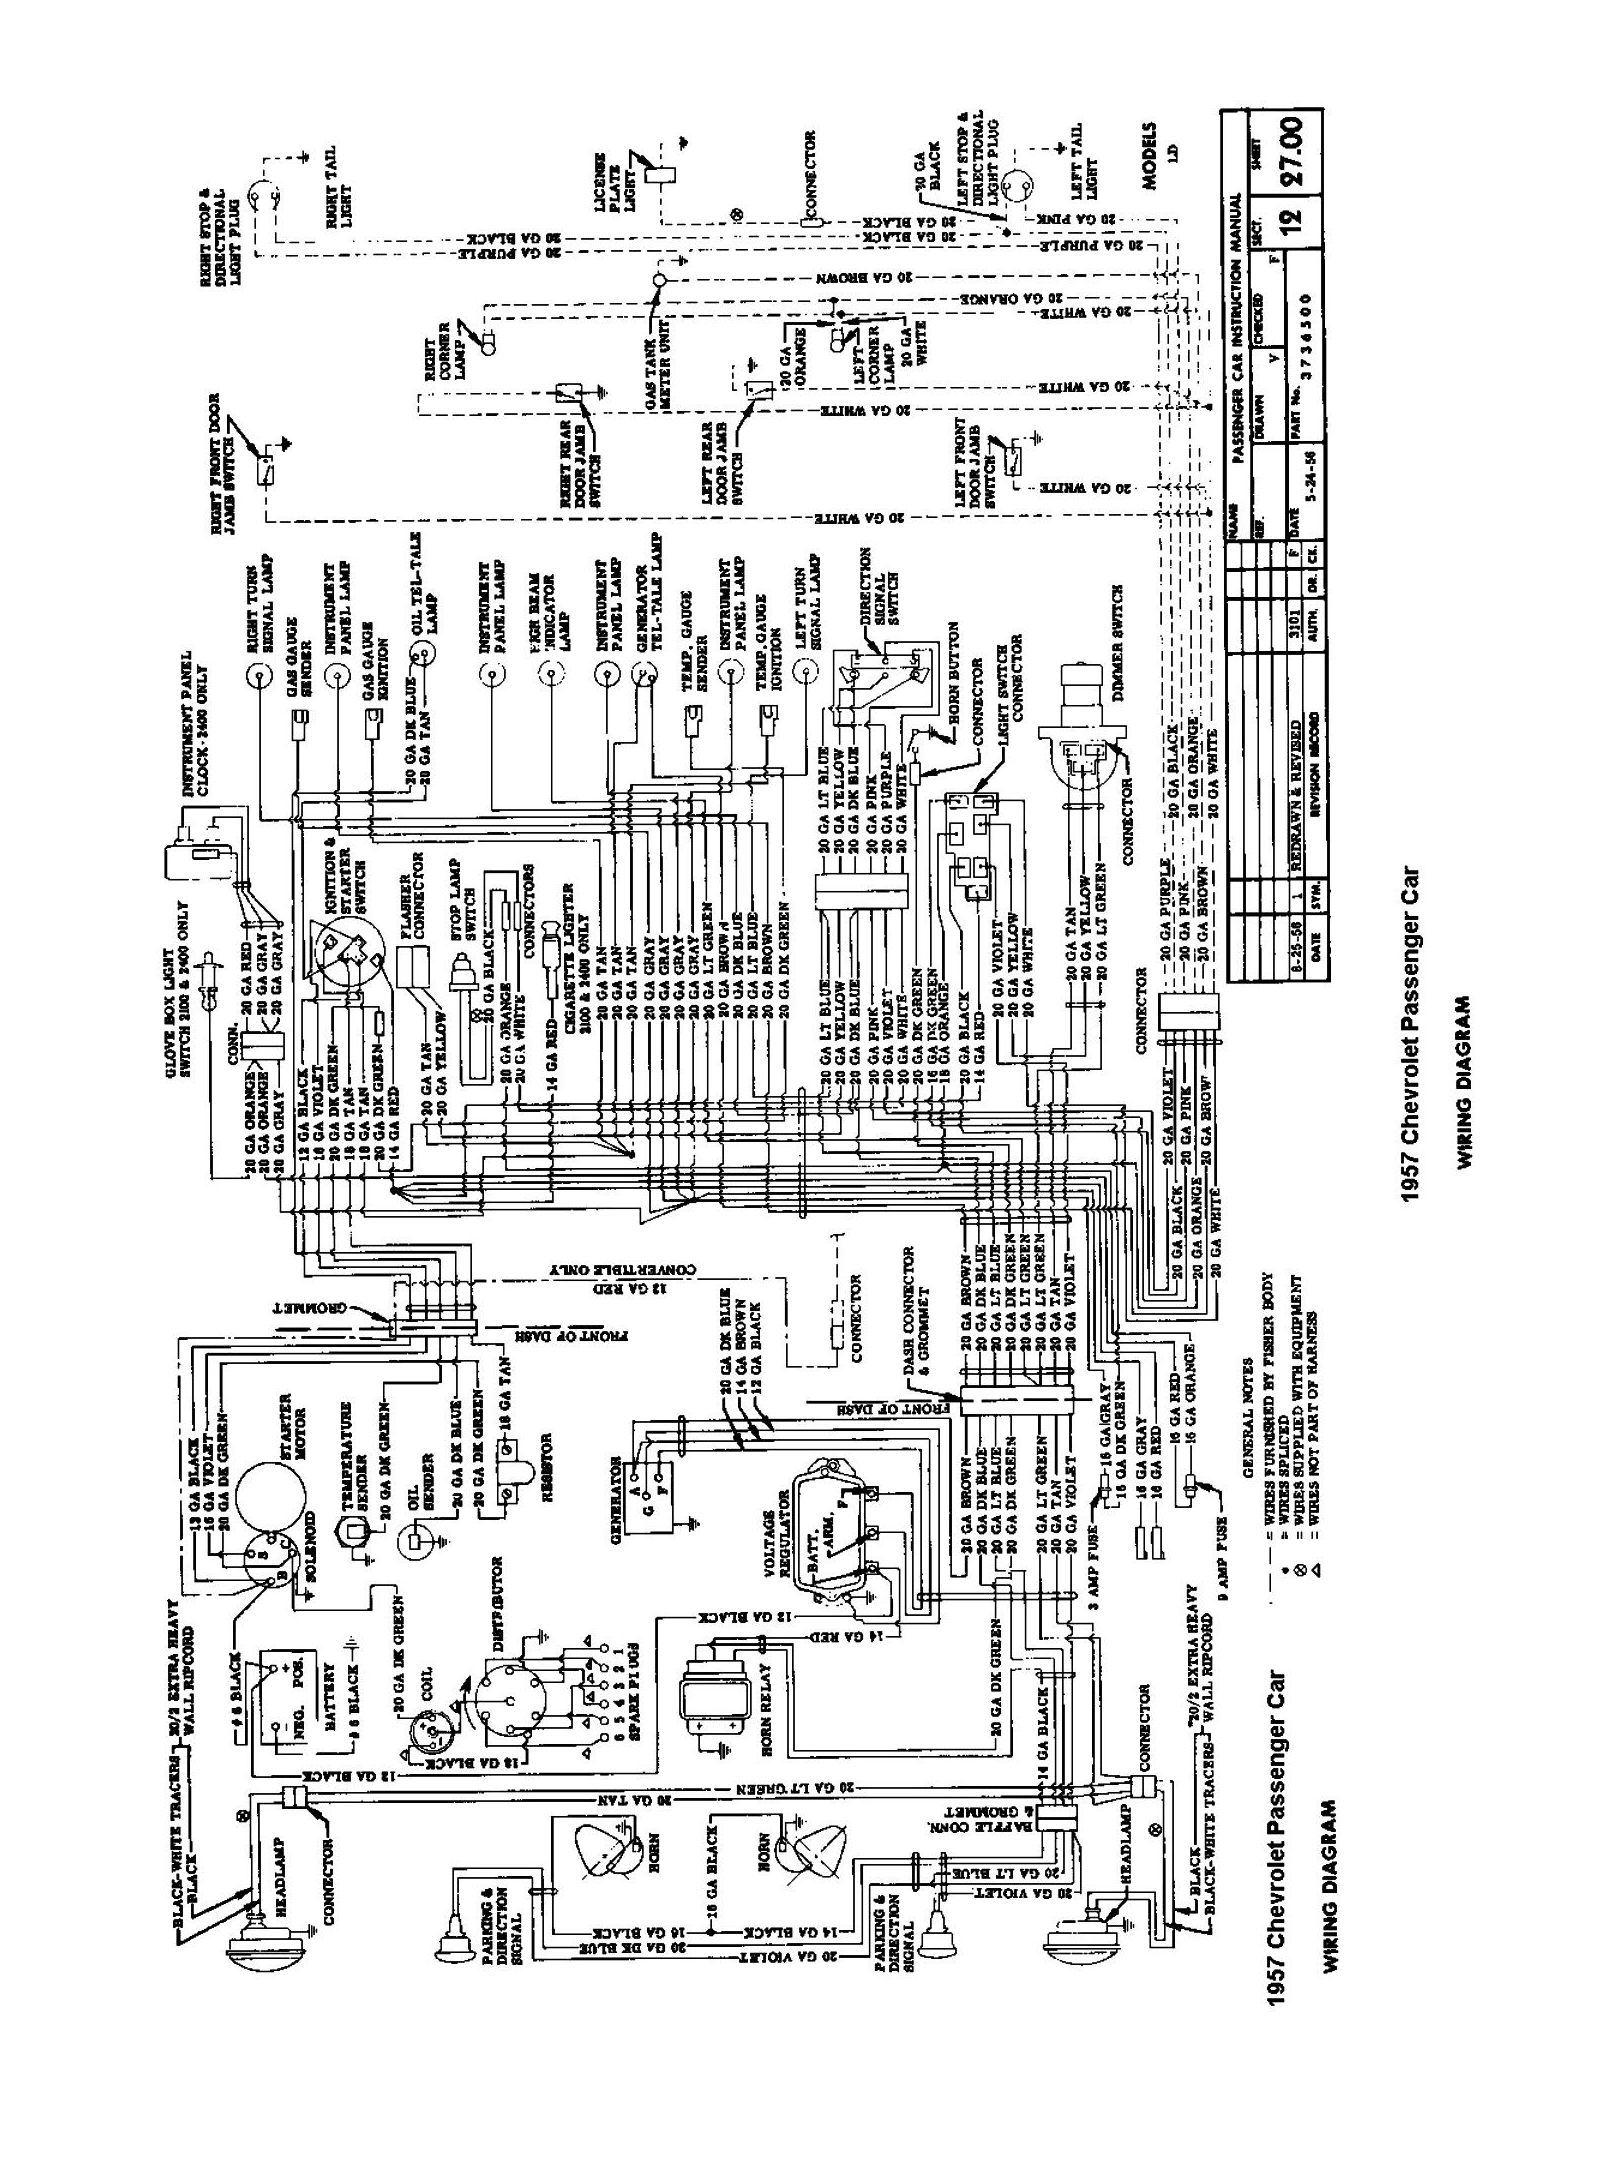 wiring chevy clock wiring diagram 57 chevy clock wiring wiring diagram mix 57 chevy clock wiring [ 1600 x 2164 Pixel ]